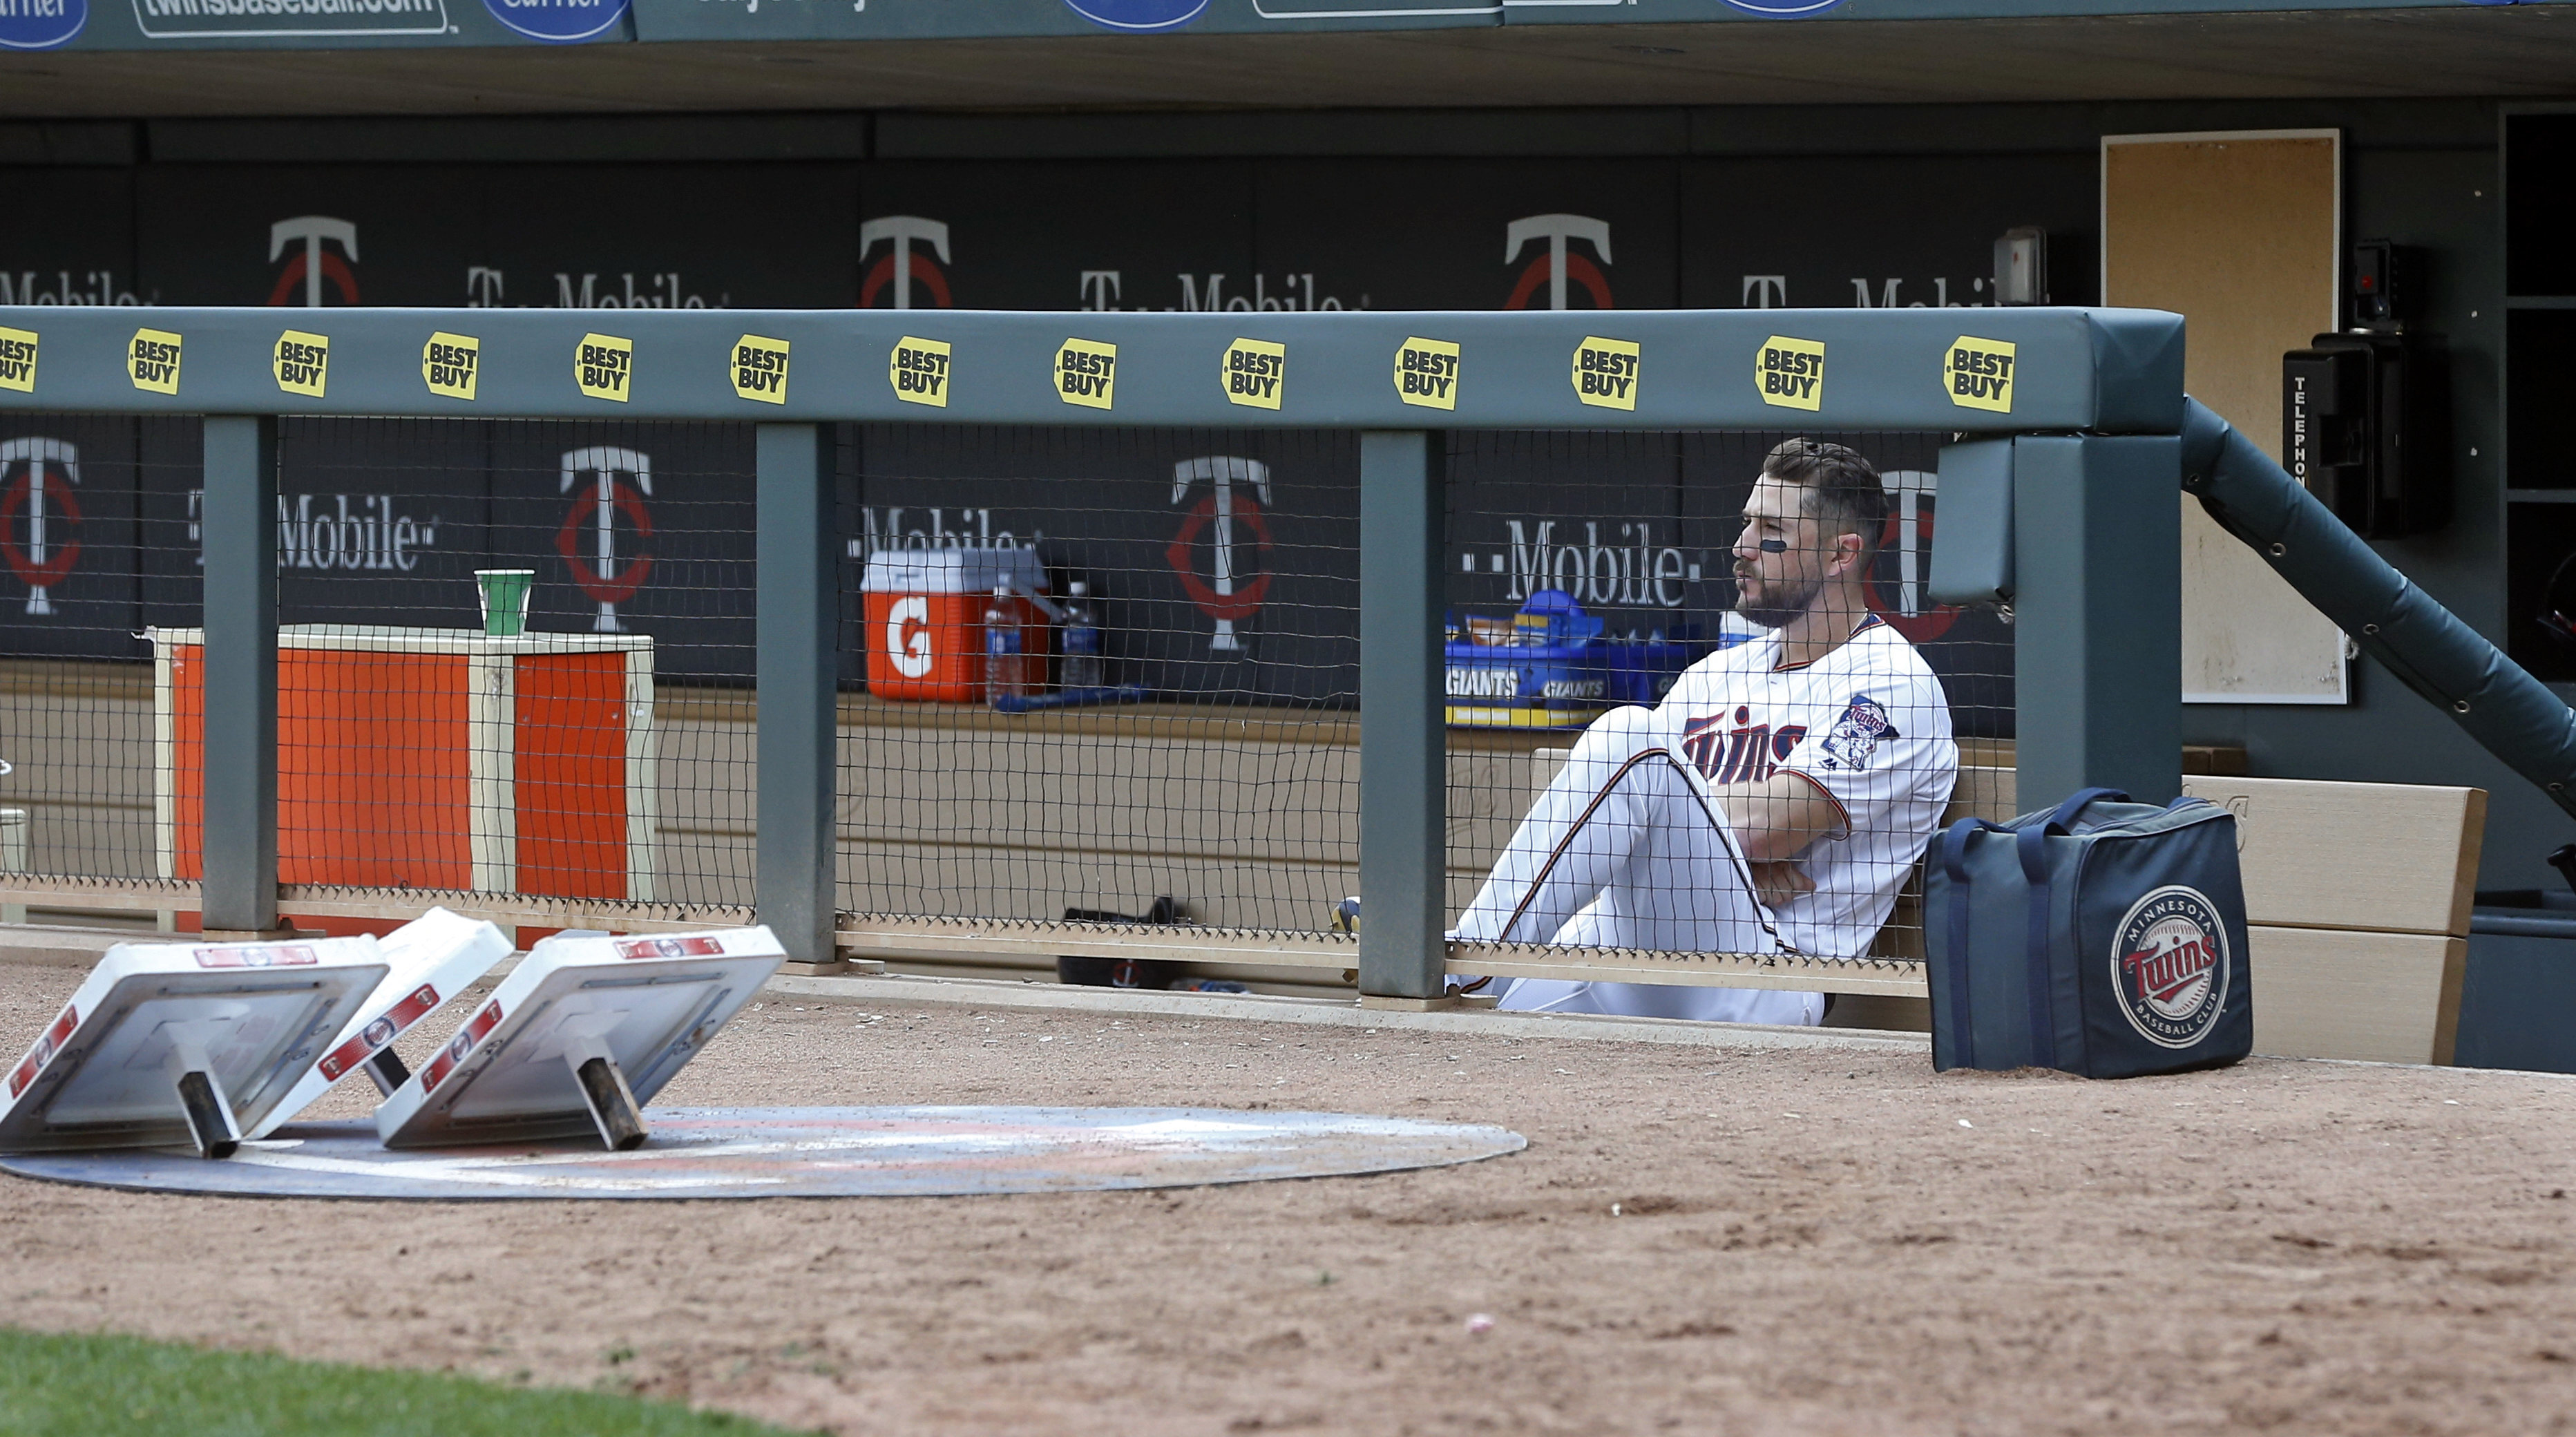 Minnesota Twins' Trevor Plouffe sits alone in the dugout after the winless Twins' 3-1 loss to the Chicago White Sox in a baseball game Thursday, April 14, 2016, in Minneapolis. The loss was the ninth straight. (AP Photo/Jim Mone)